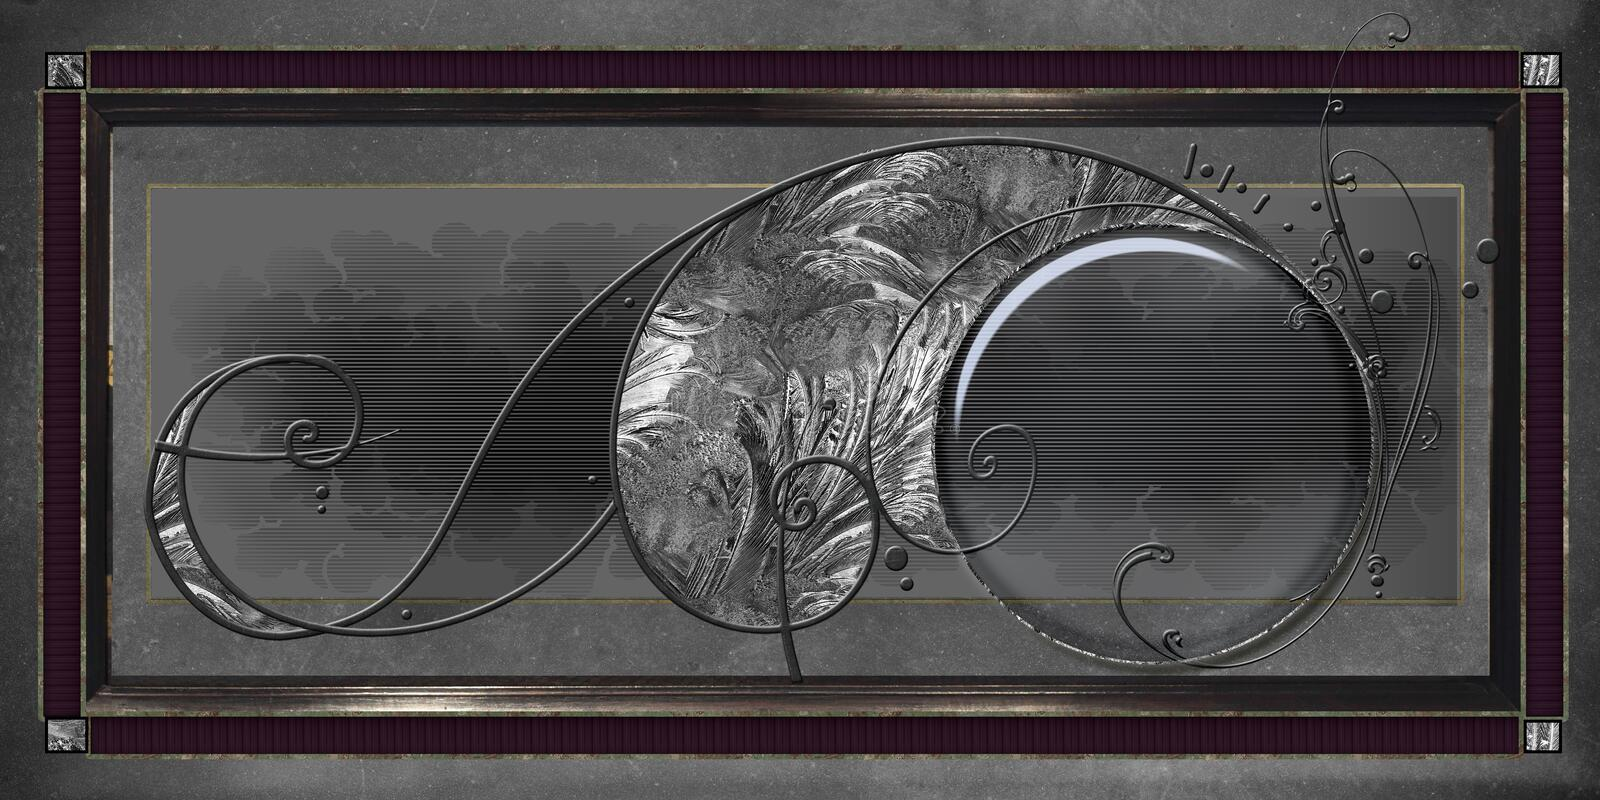 Framed deco glass royalty free illustration